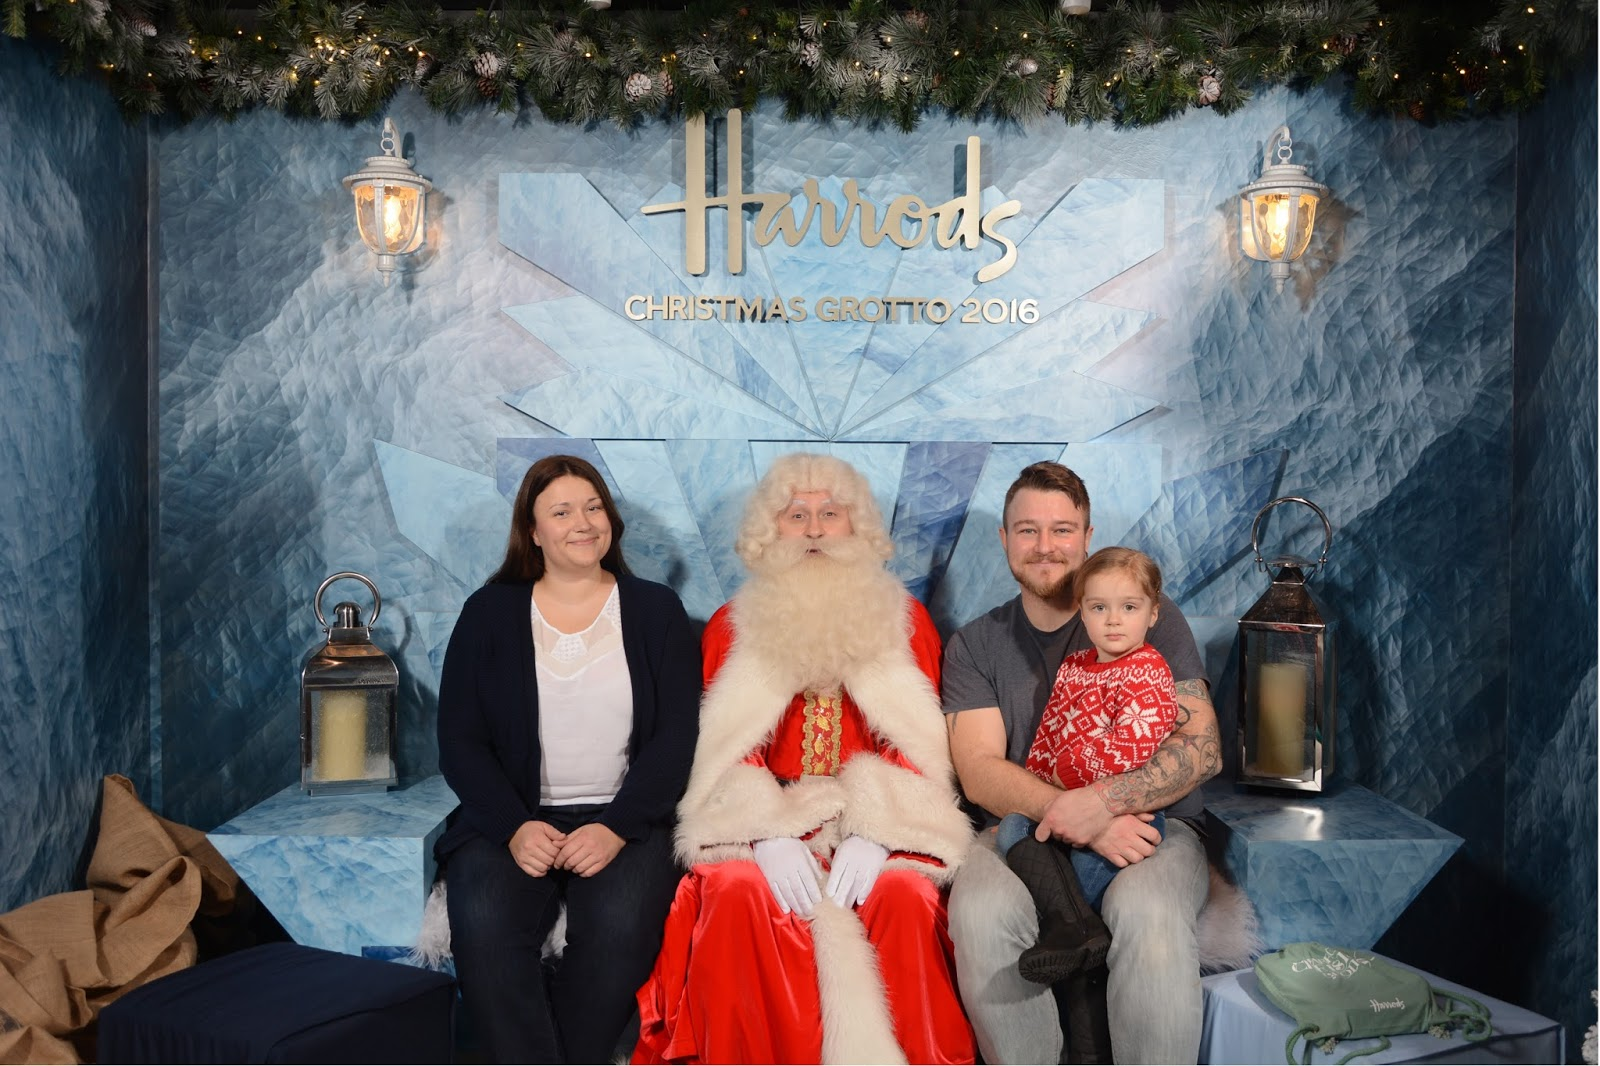 family picture with santa at harrods christmas grotto 2016